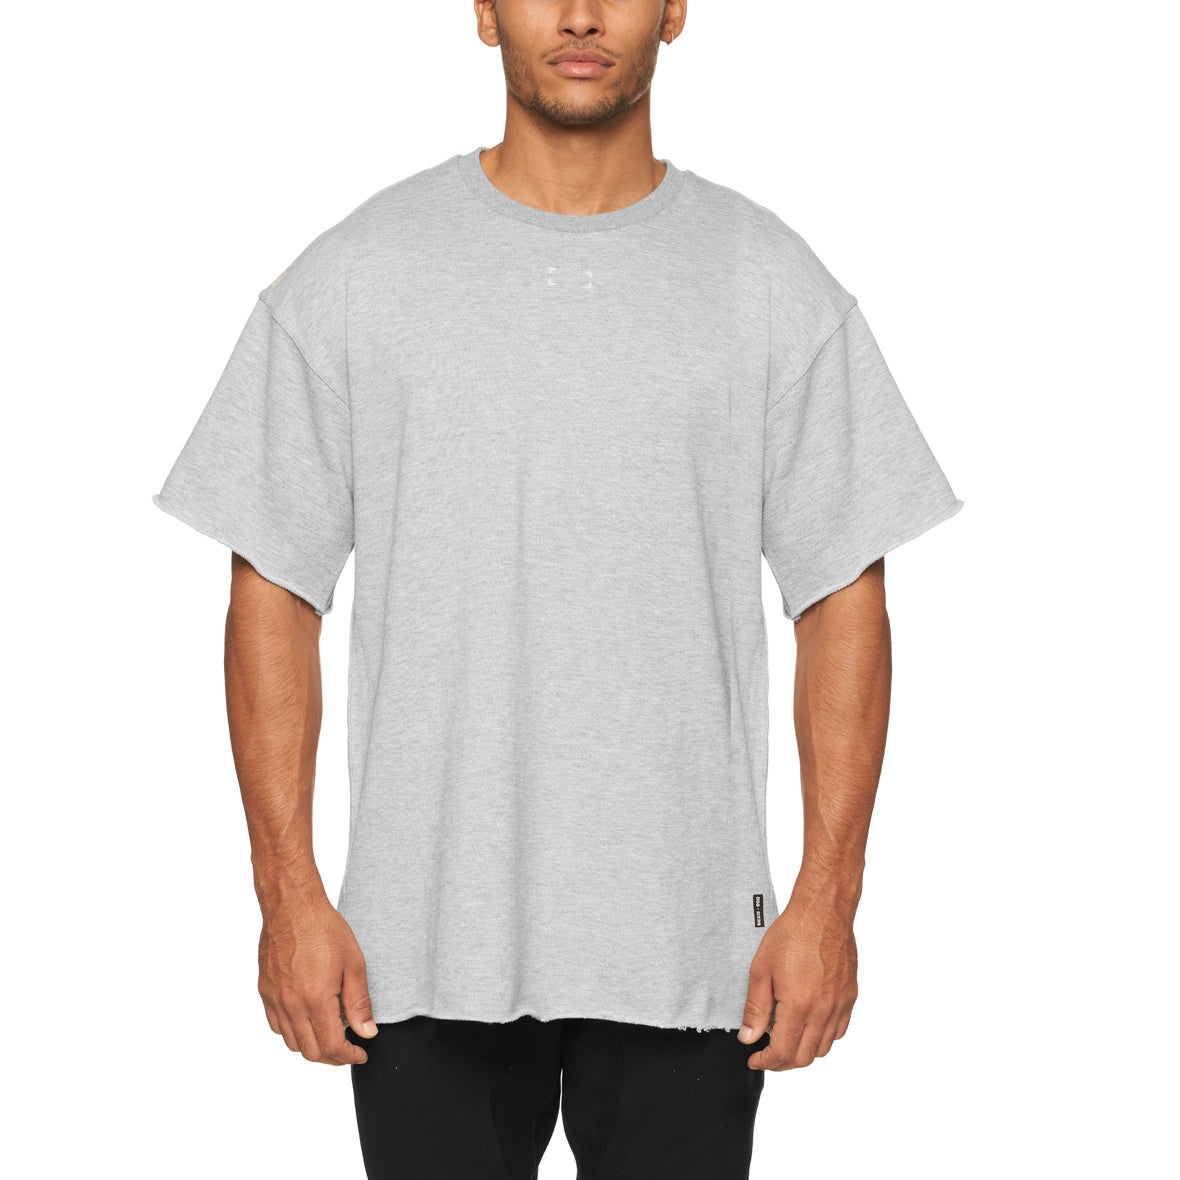 0339. French Terry Oversized Tee - Heather Grey